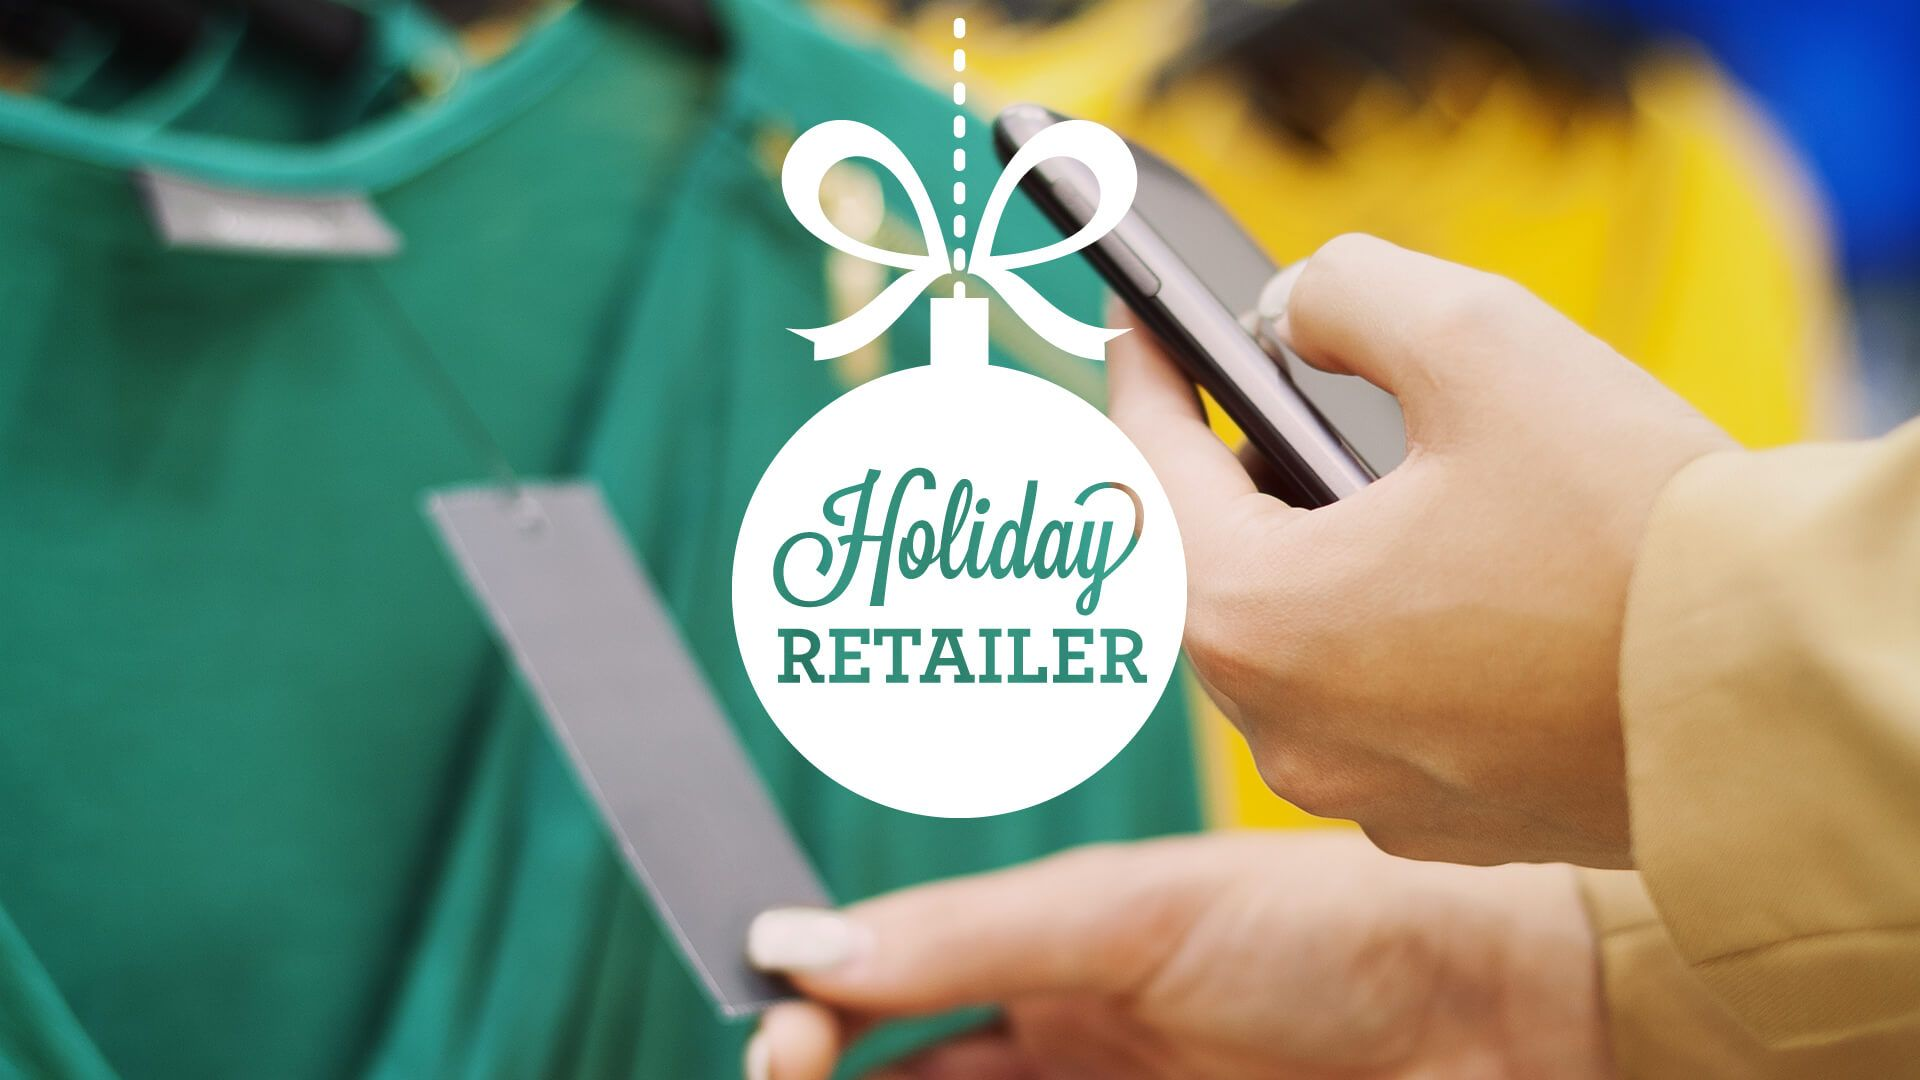 More Than 1 3 Of Shoppers Plan To Start Holiday Shopping Before